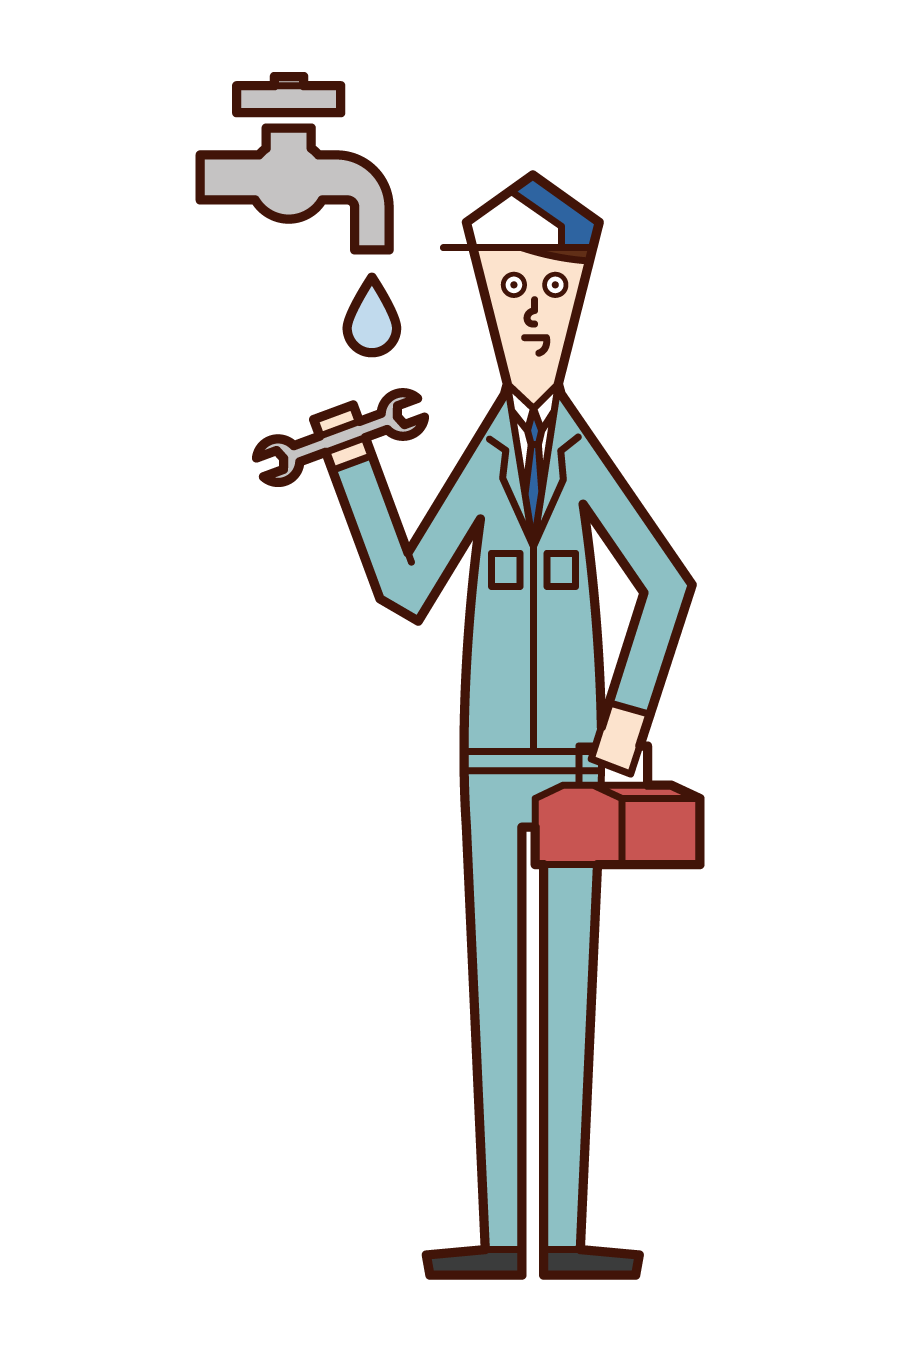 Illustration of a man who works on waterworks